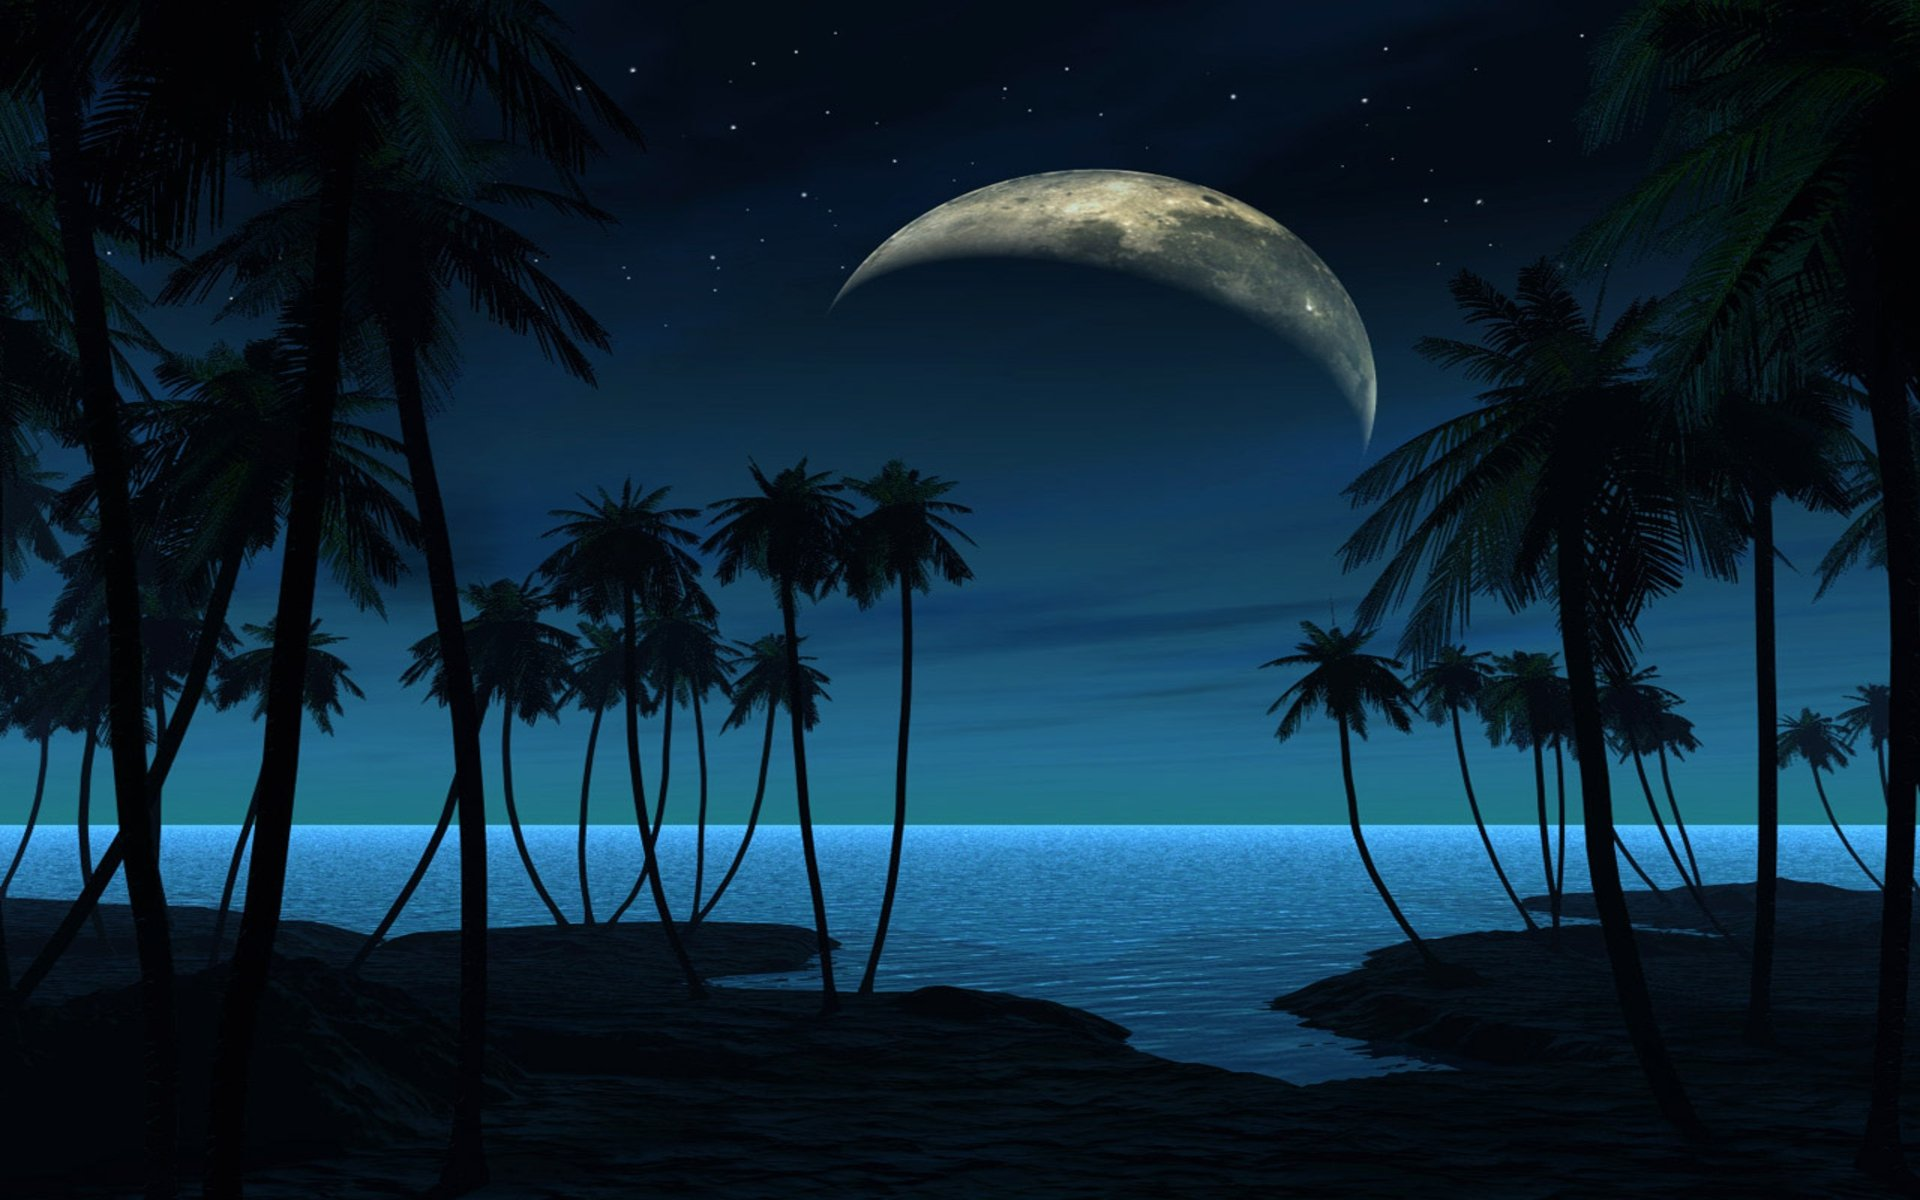 Beach at Night Pictures HD Wallpapers Live HD Wallpaper 1920x1200